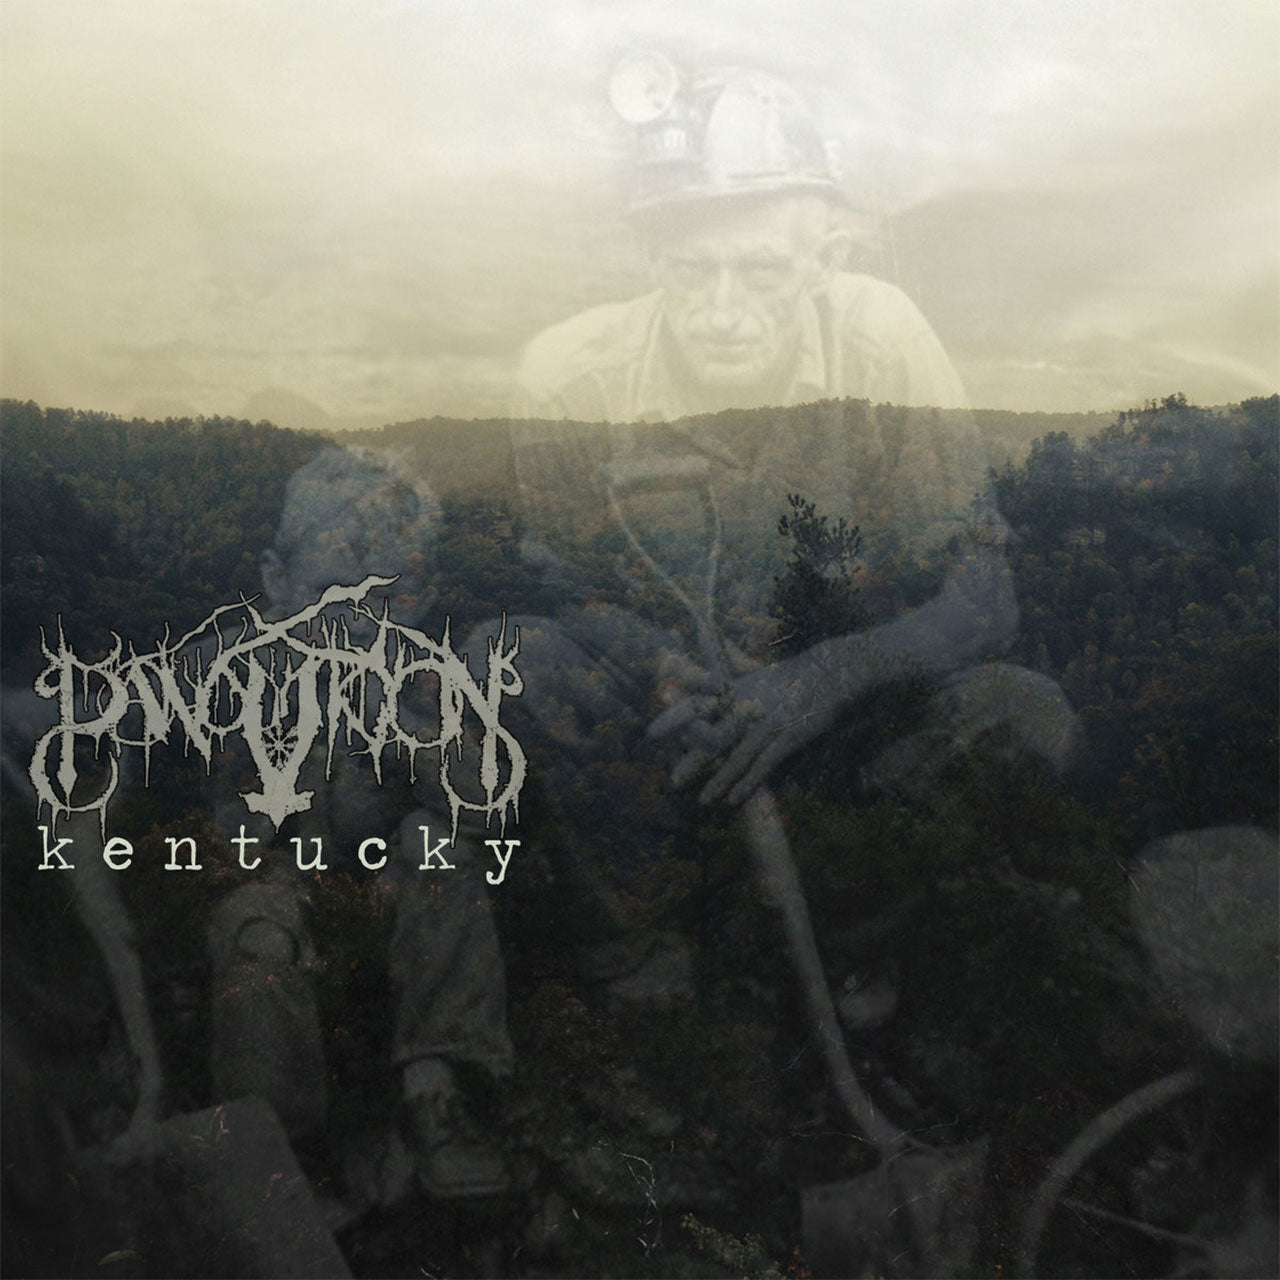 Panopticon - Kentucky (2019 Reissue) (CD)